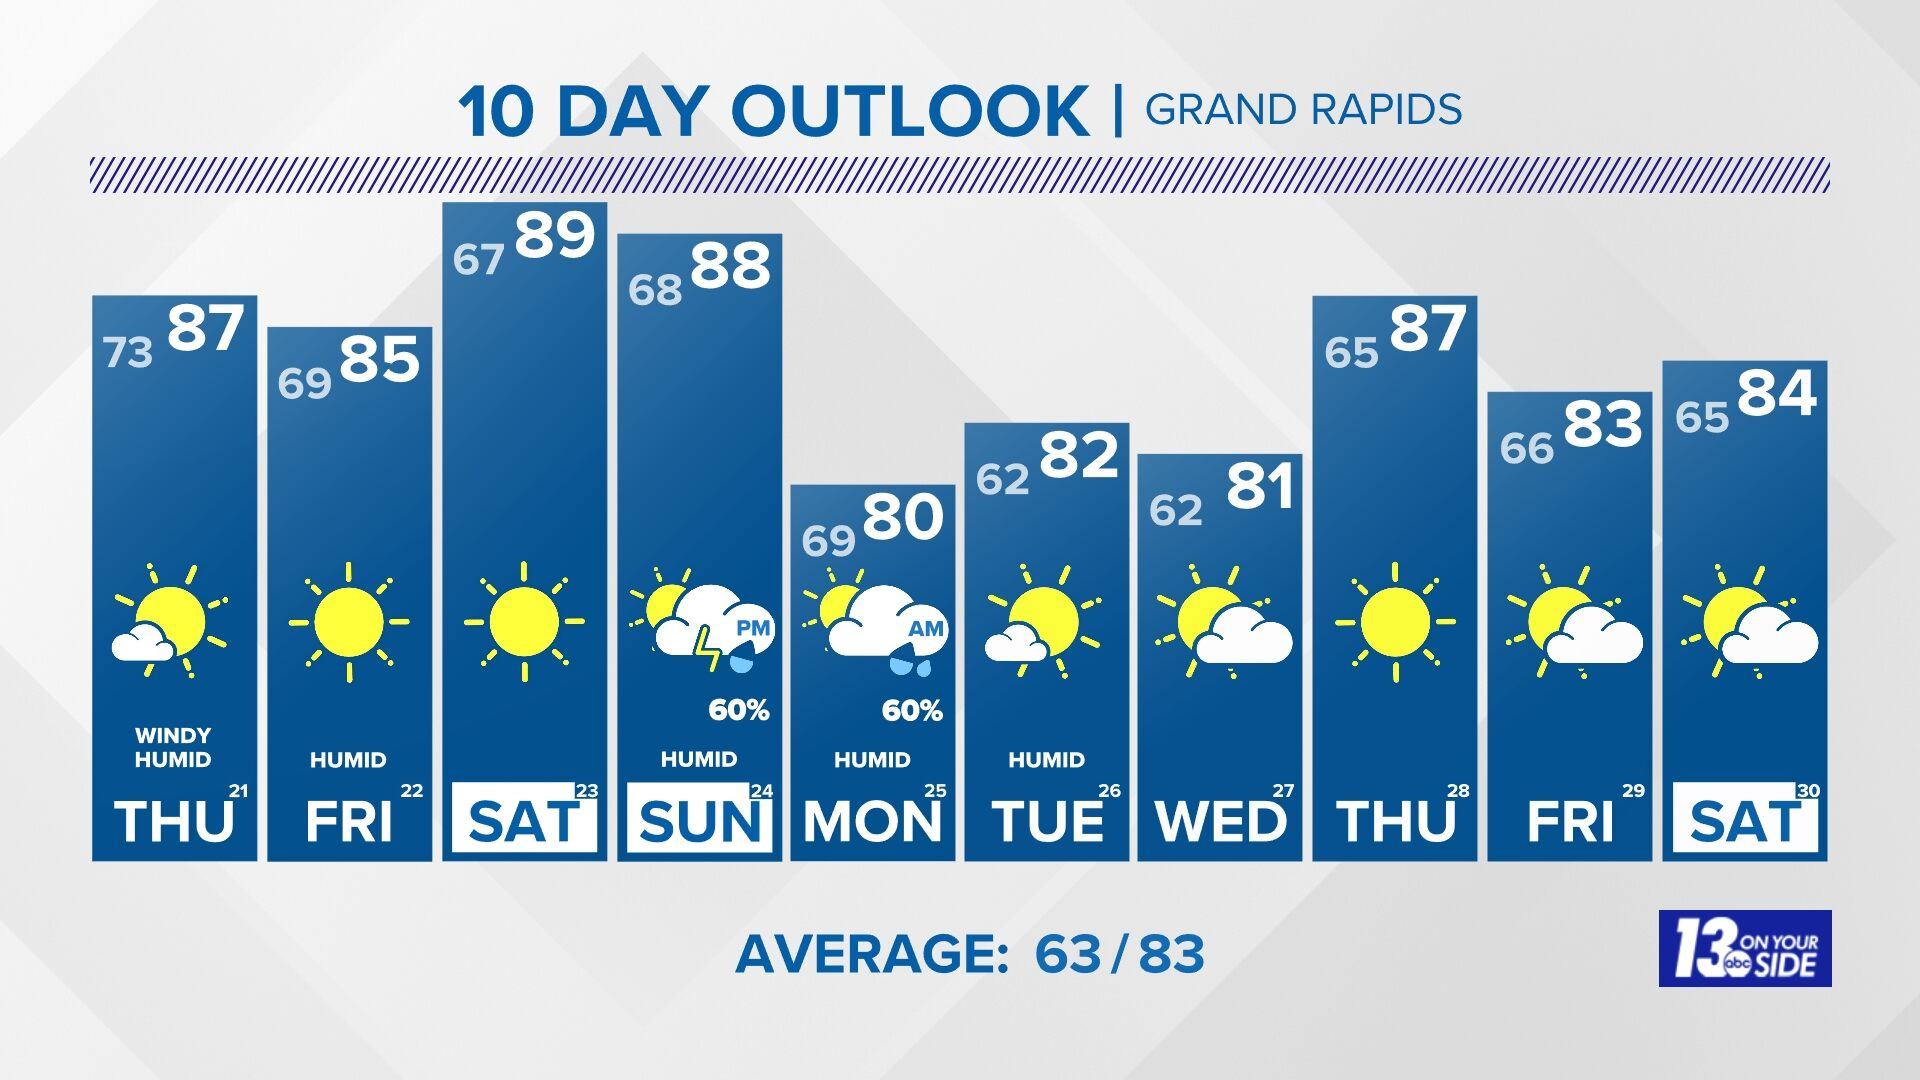 10 Day Outlook